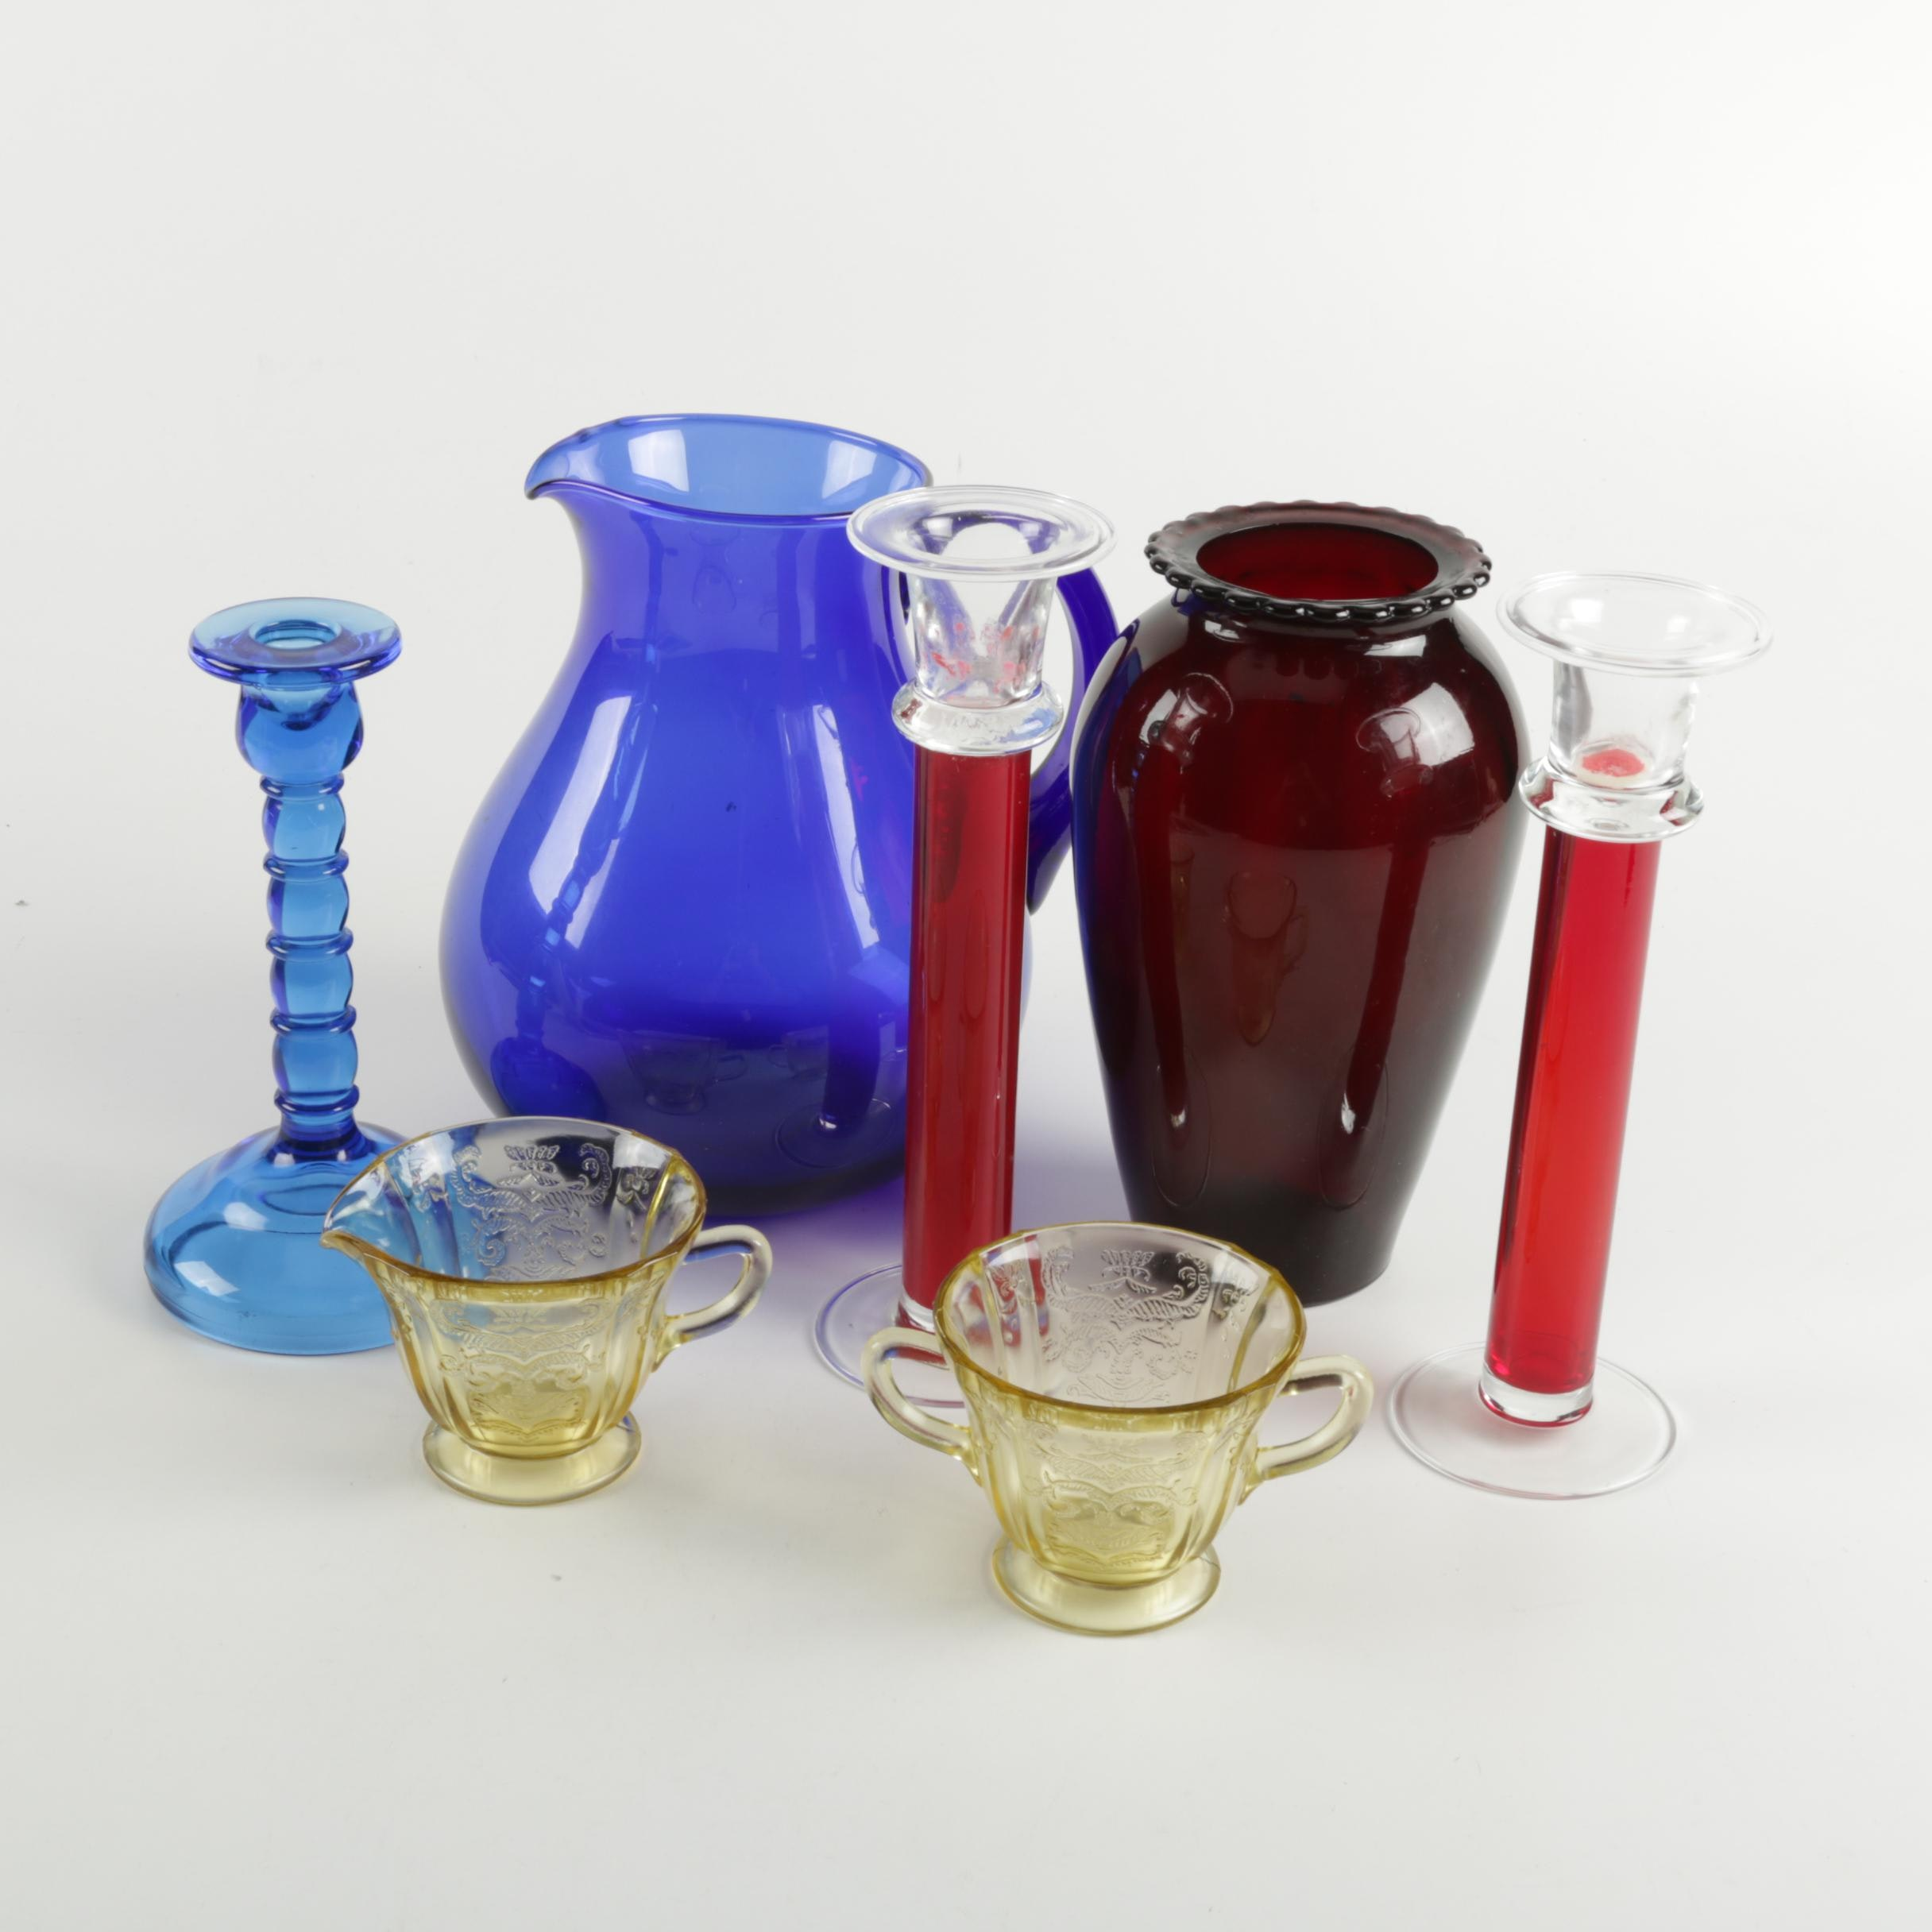 Collection of Colorful Glass Decor